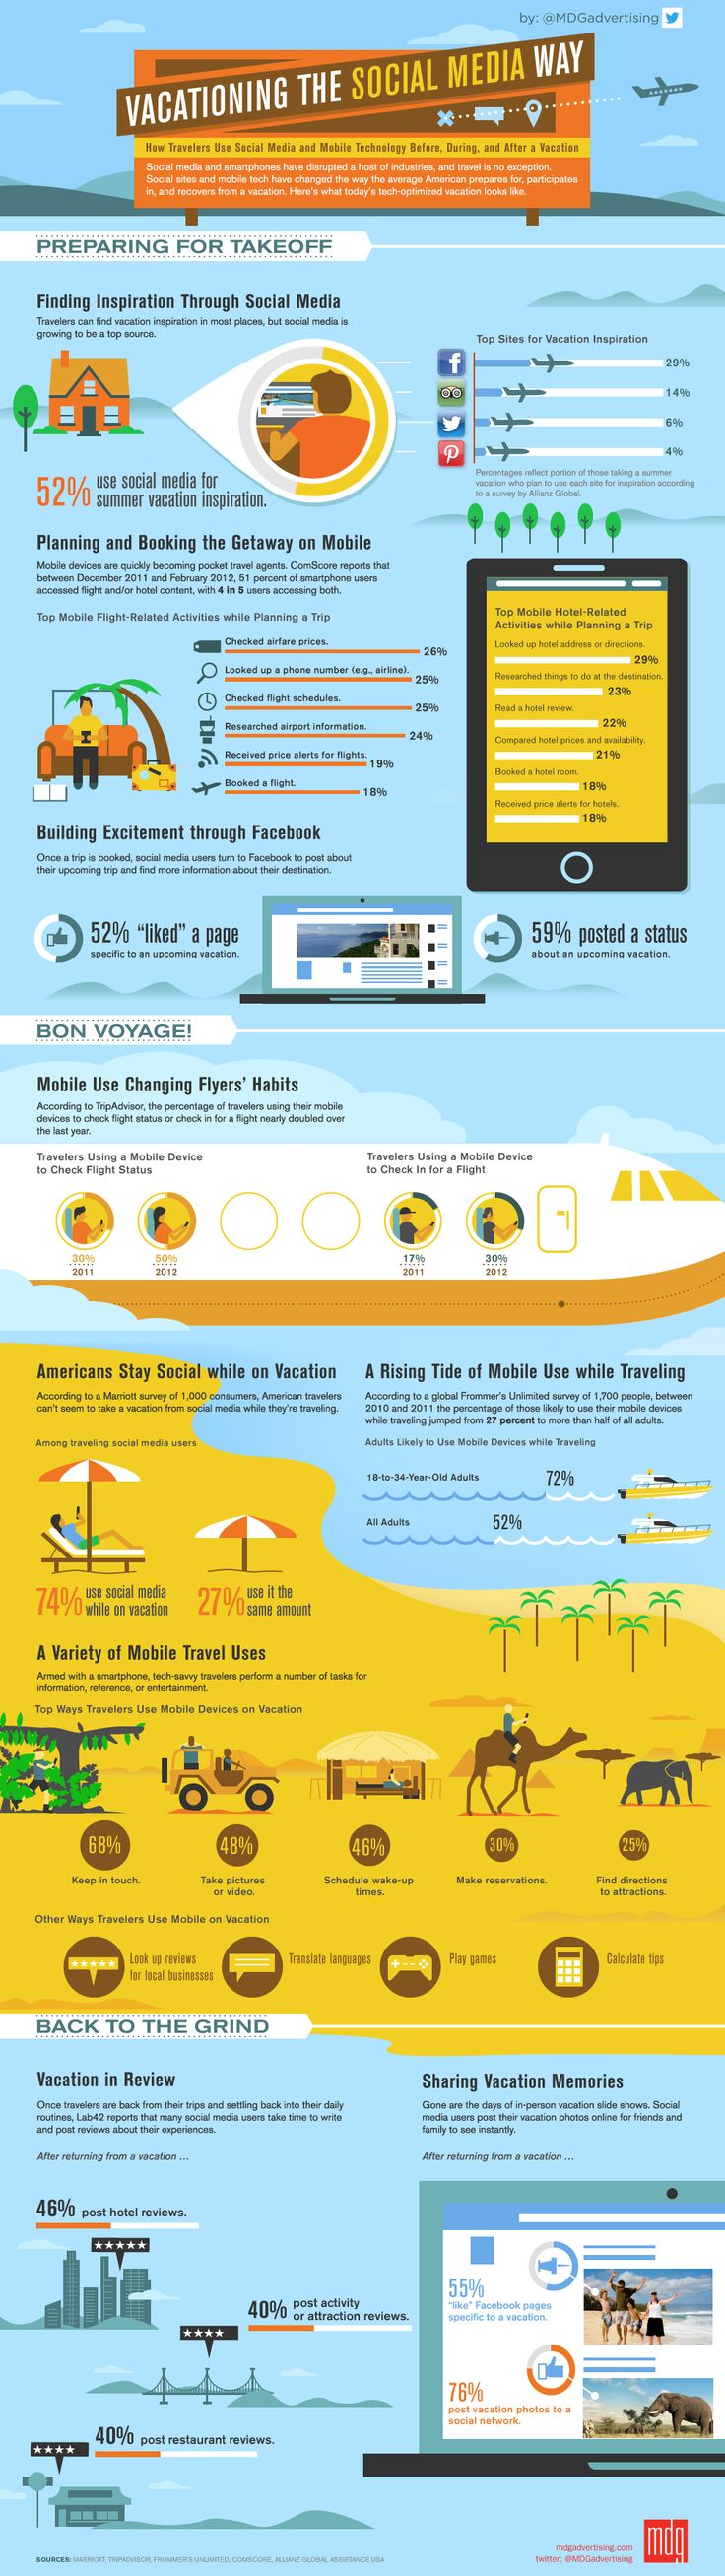 Vacationing The Social Media Way [Travel Infographic]